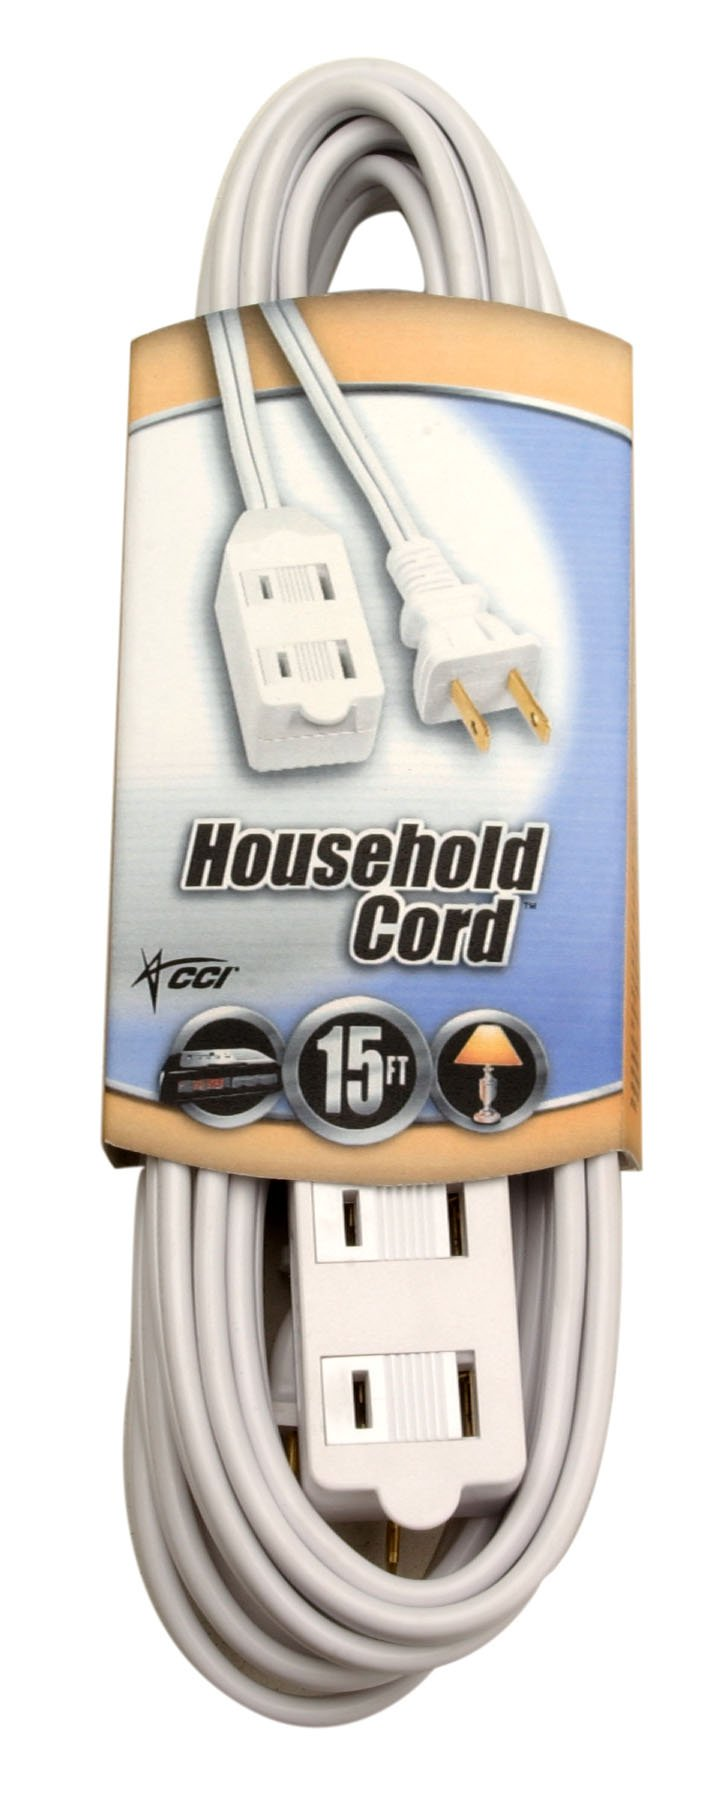 Coleman Cable 09414 Extension Cord with Cube Tap, White, 15-Foot